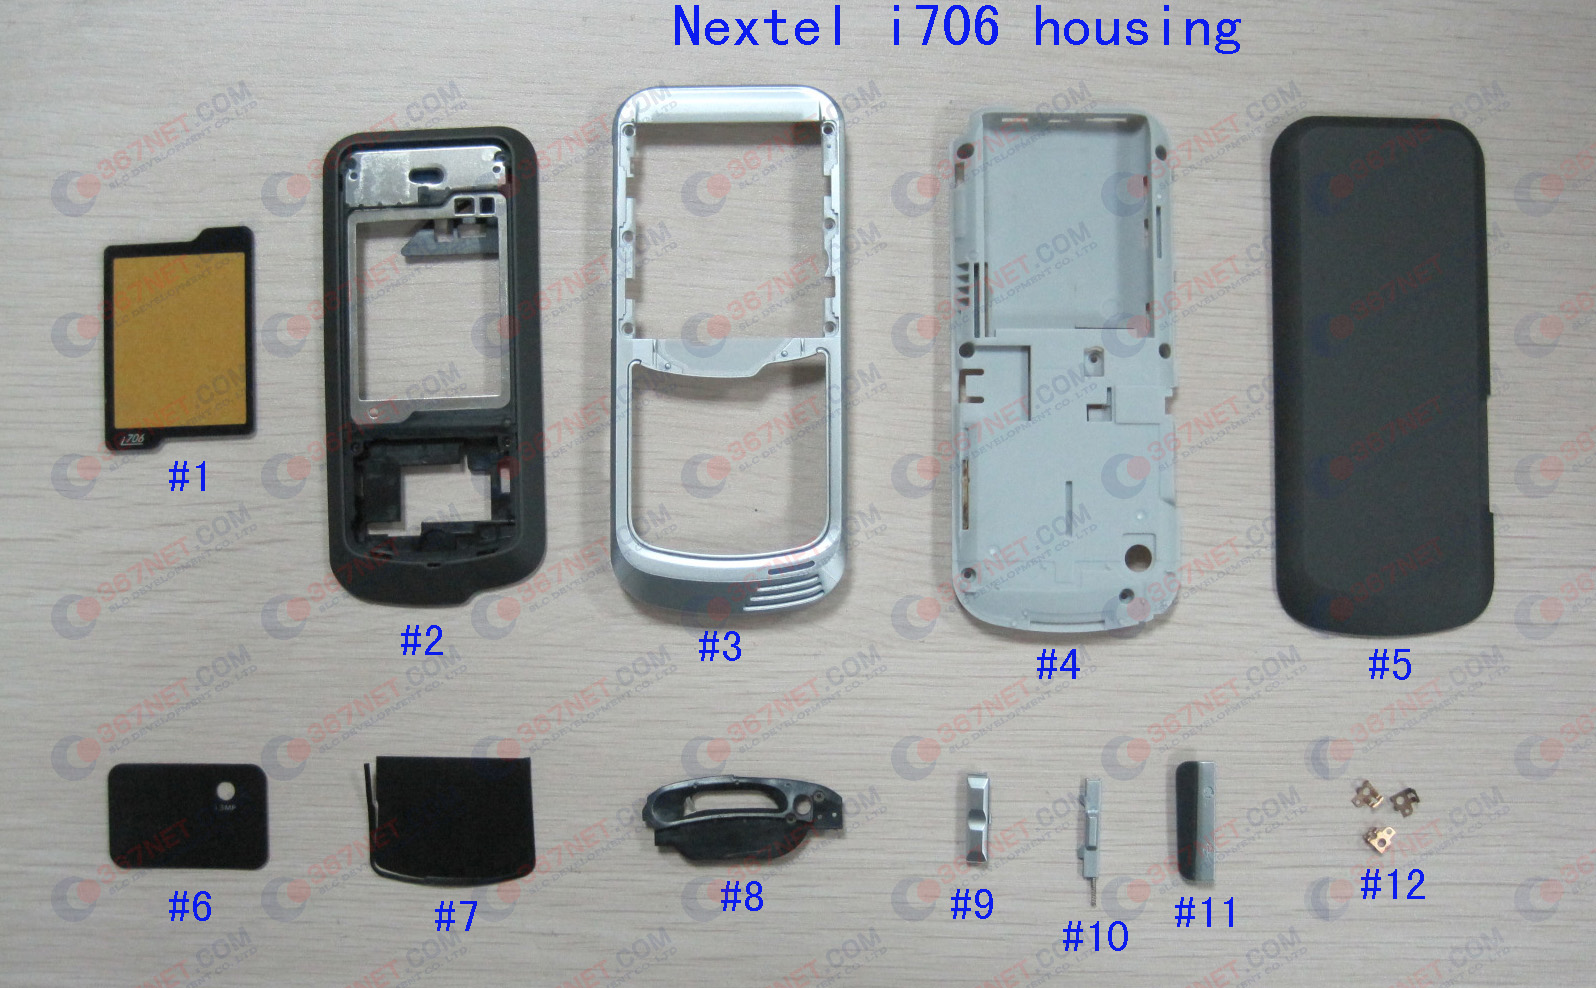 Nextel i706 housing